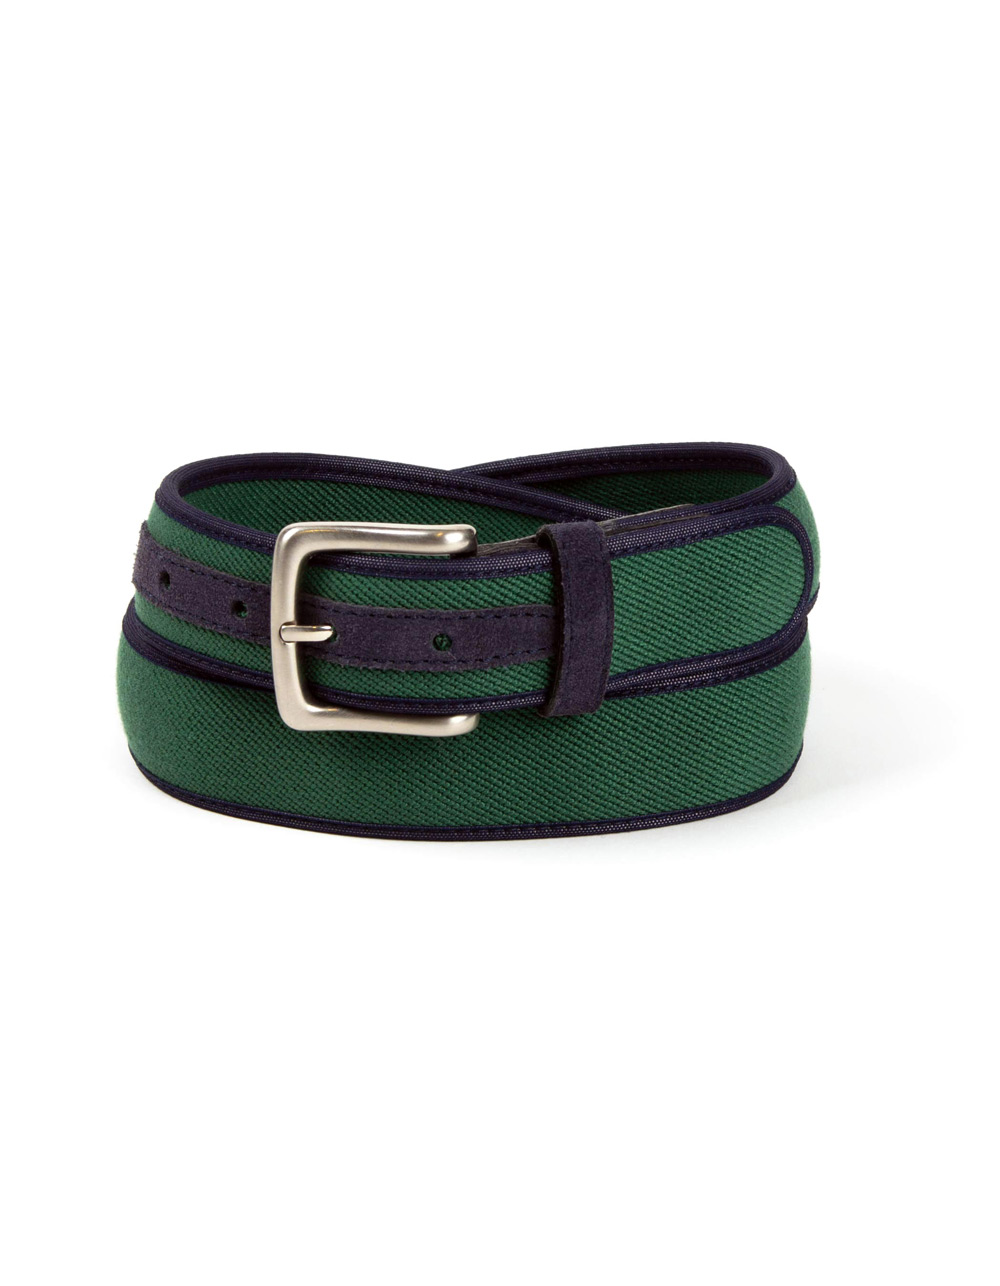 Belt combined with brown suede and green fabric